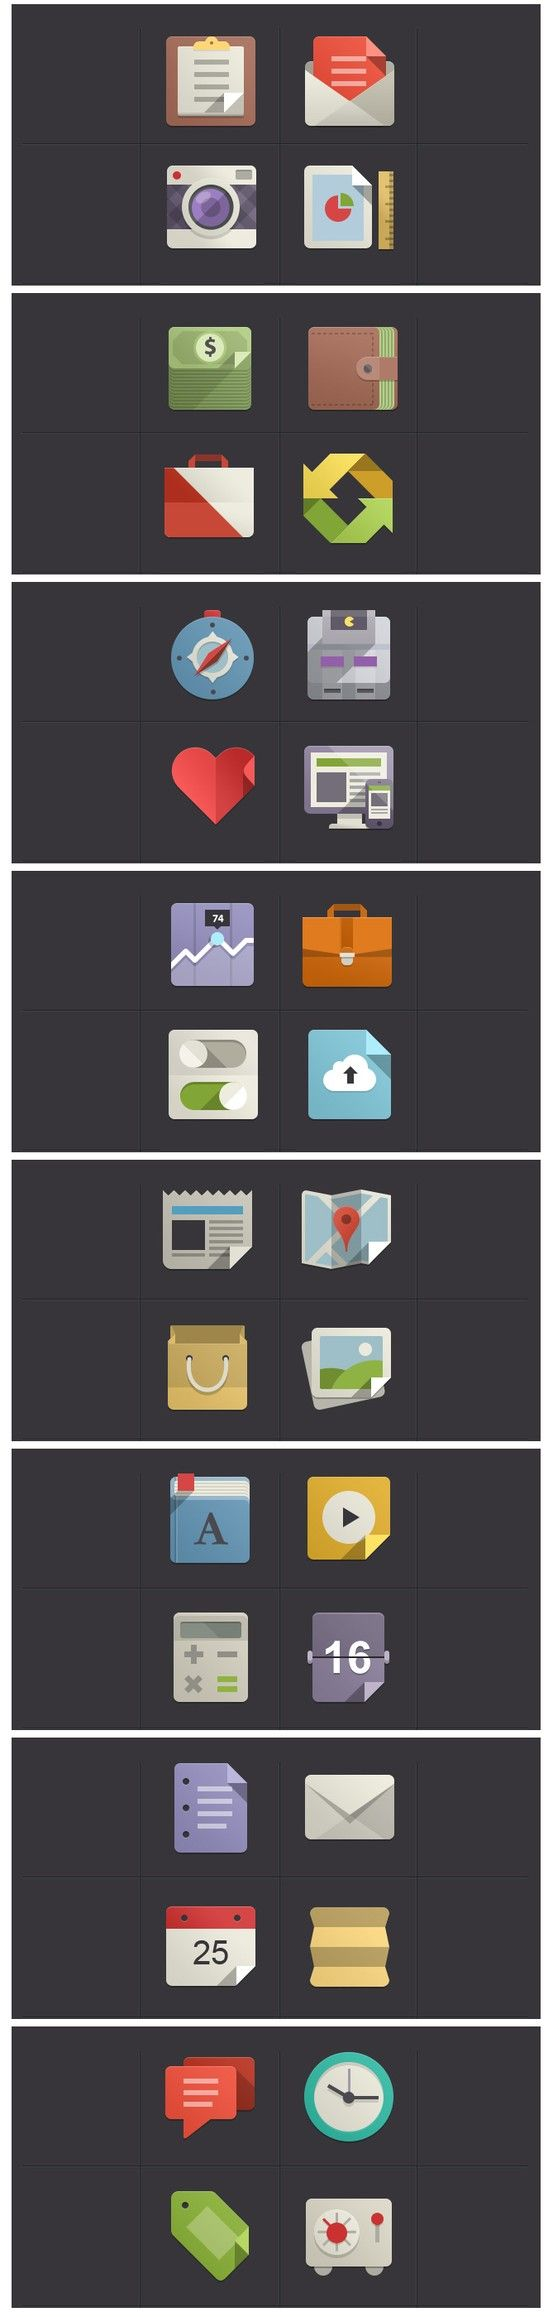 Flat icons | #icon #iconograpgy #ui #design